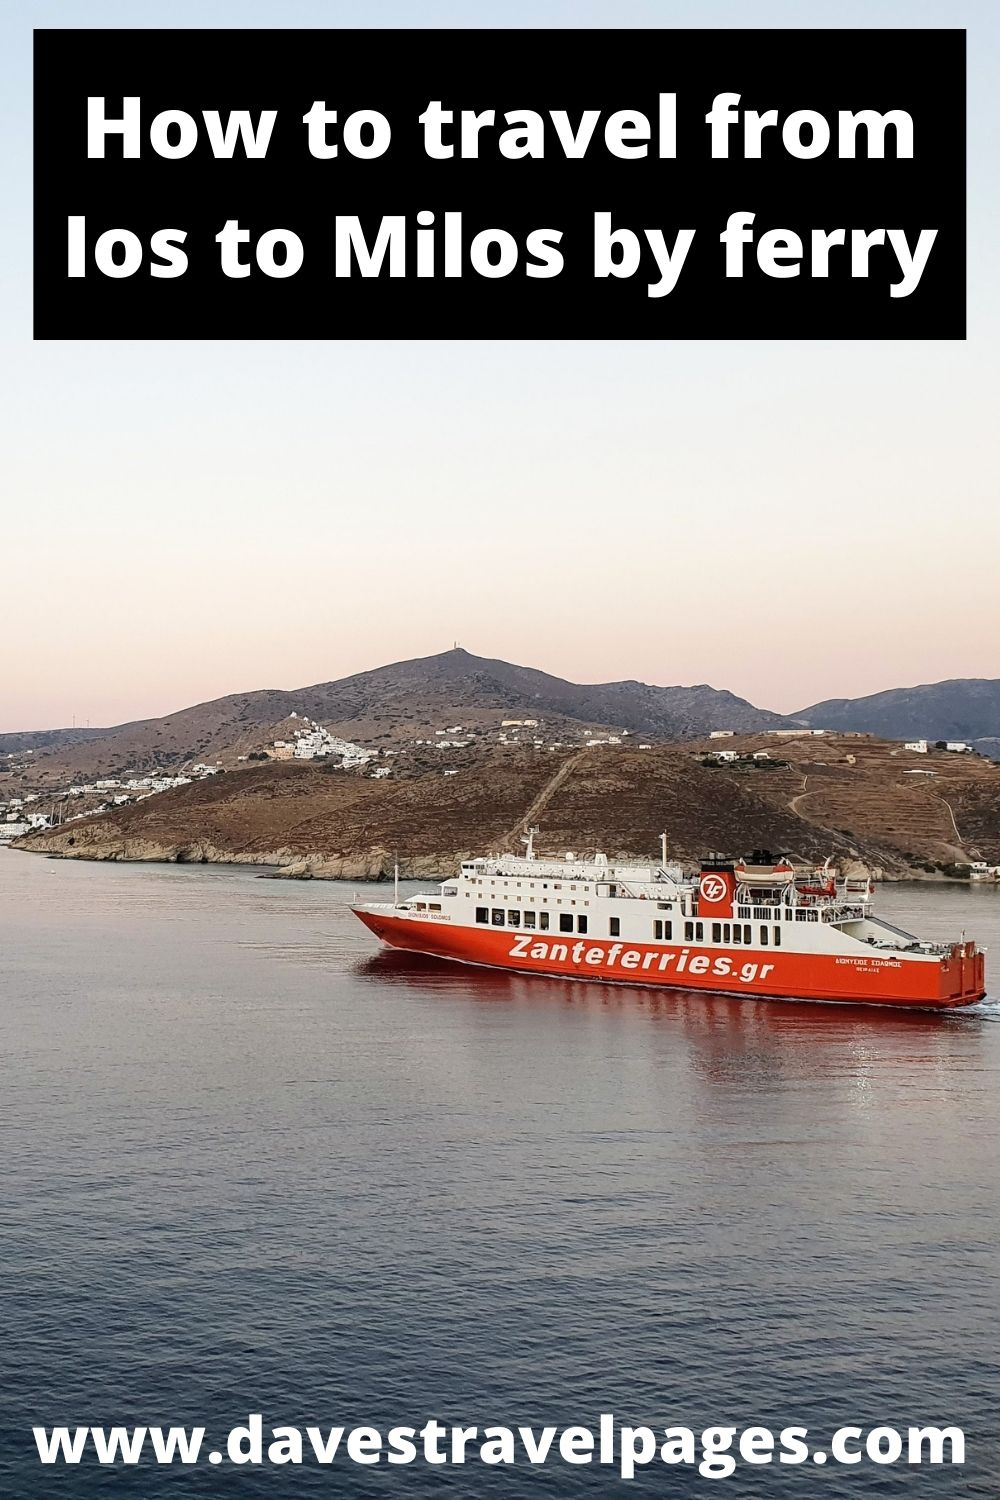 How to travel by ferry from Ios to Milos island in Greece